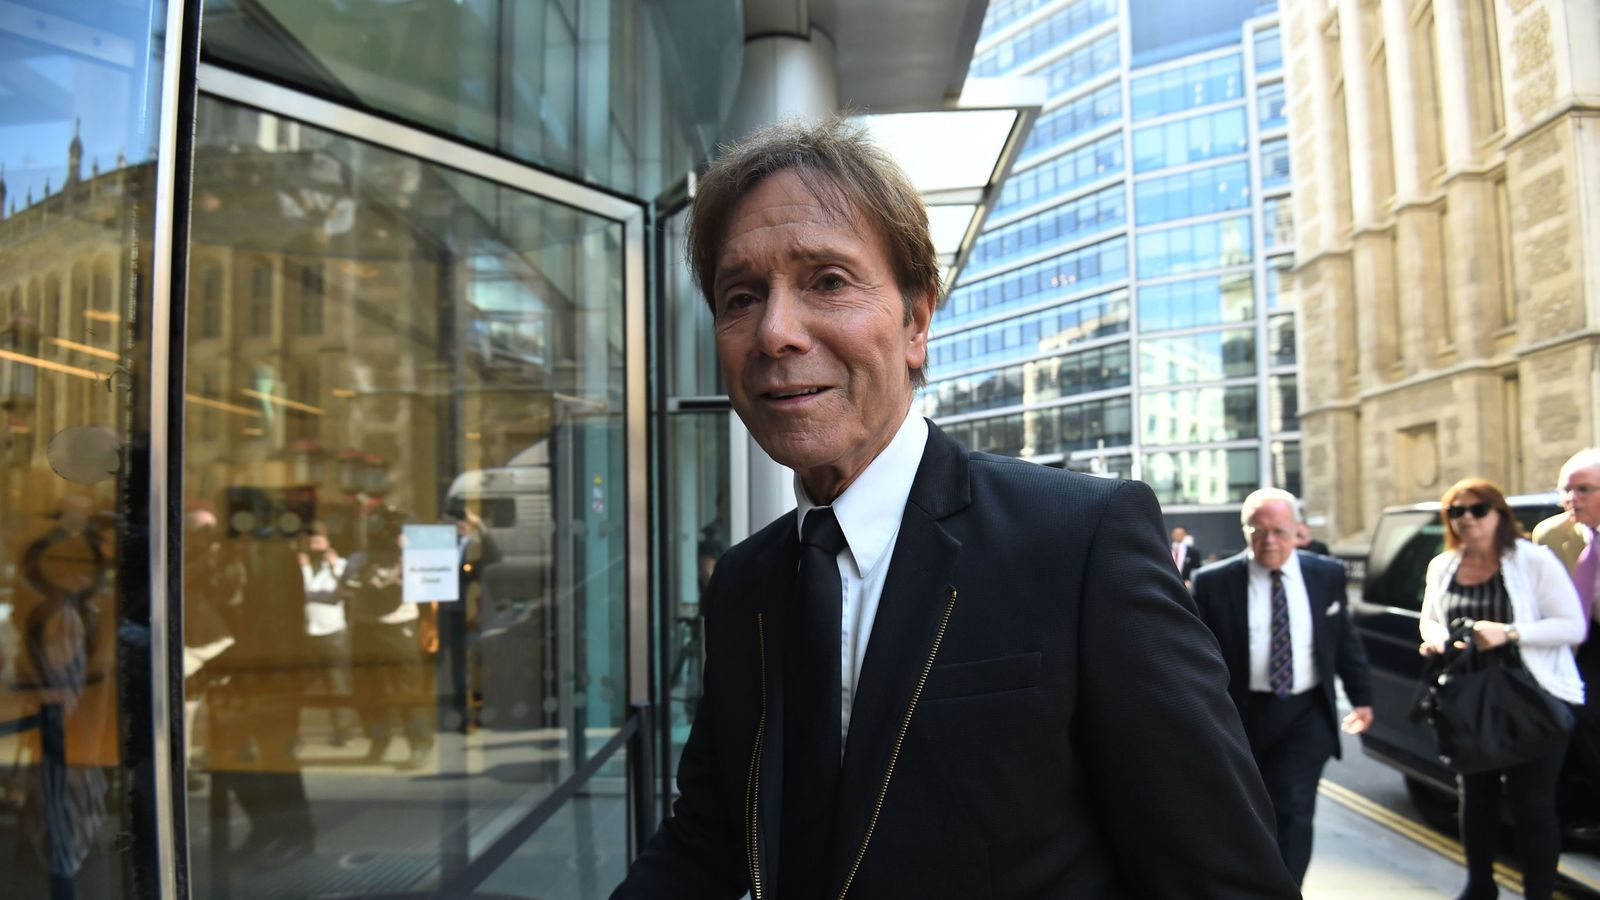 BBC: Sir Cliff coverage was in 'public interest'